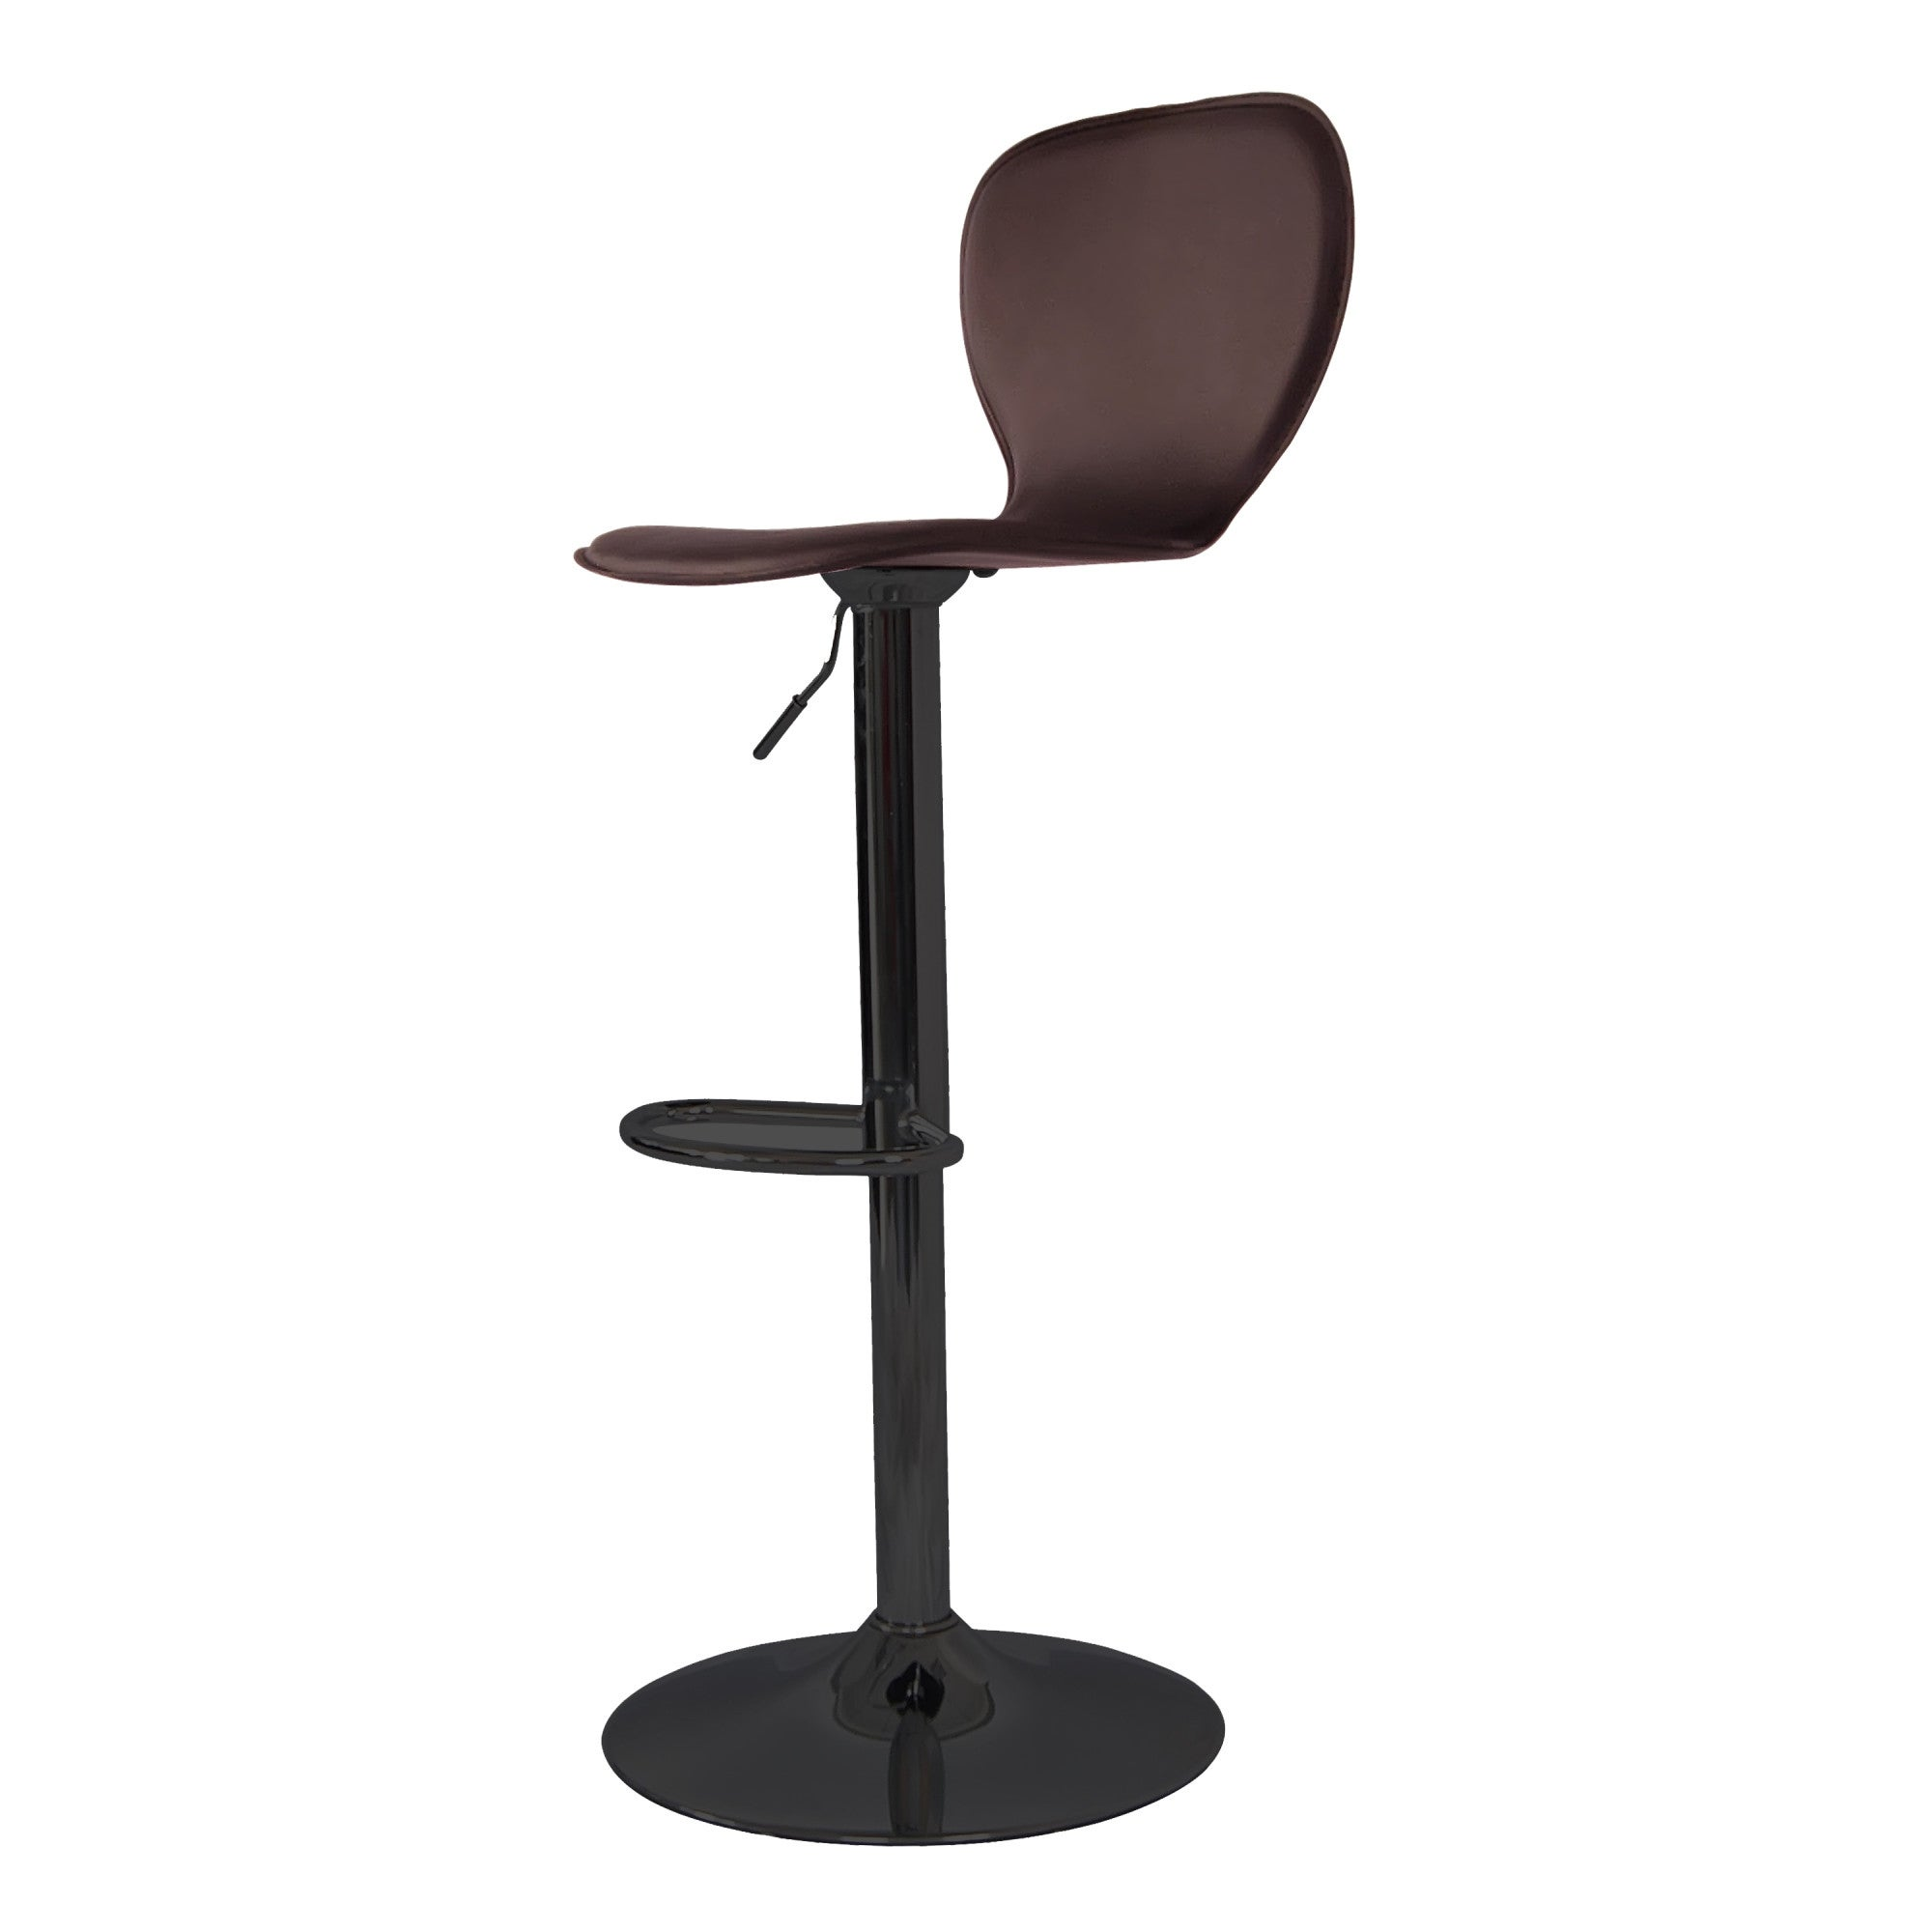 Terrific Delacora Bs Bibs003 Spade 41 Tall Metal Adjustable Height Bar Stool Pabps2019 Chair Design Images Pabps2019Com